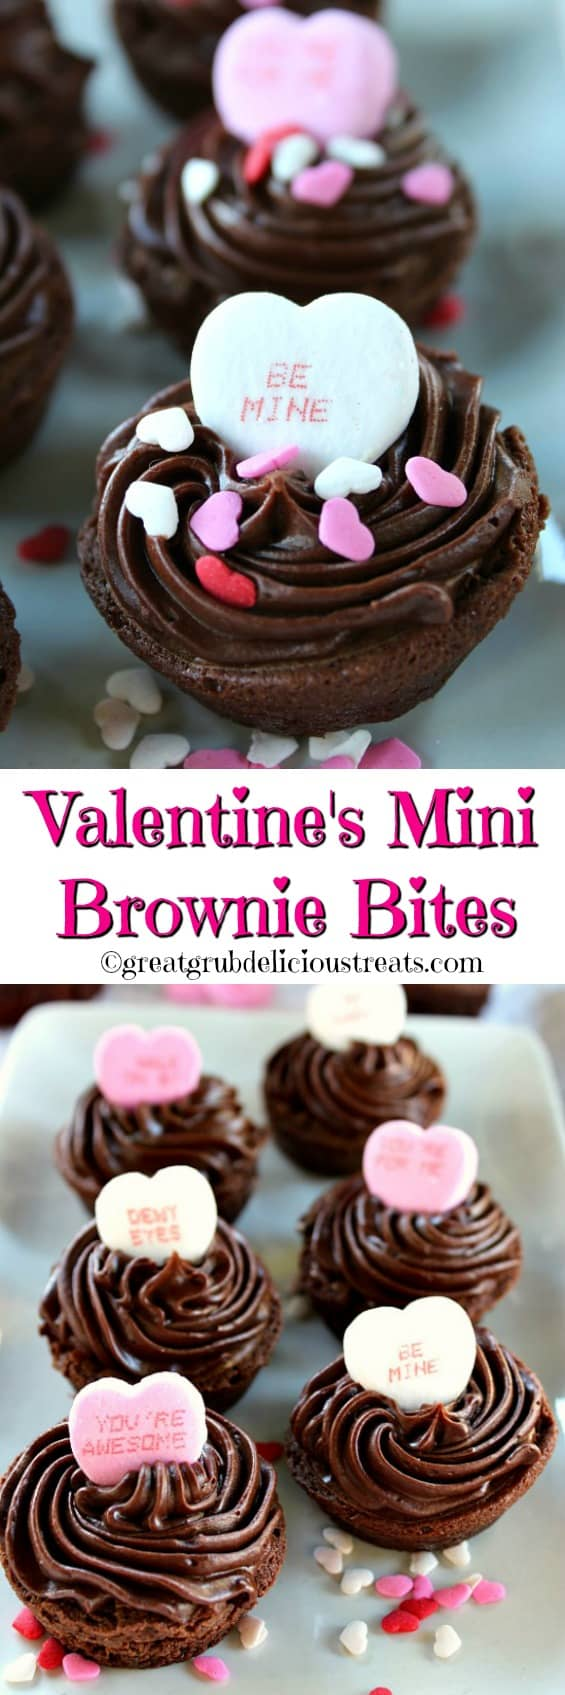 Valentine's Mini Brownie Bites